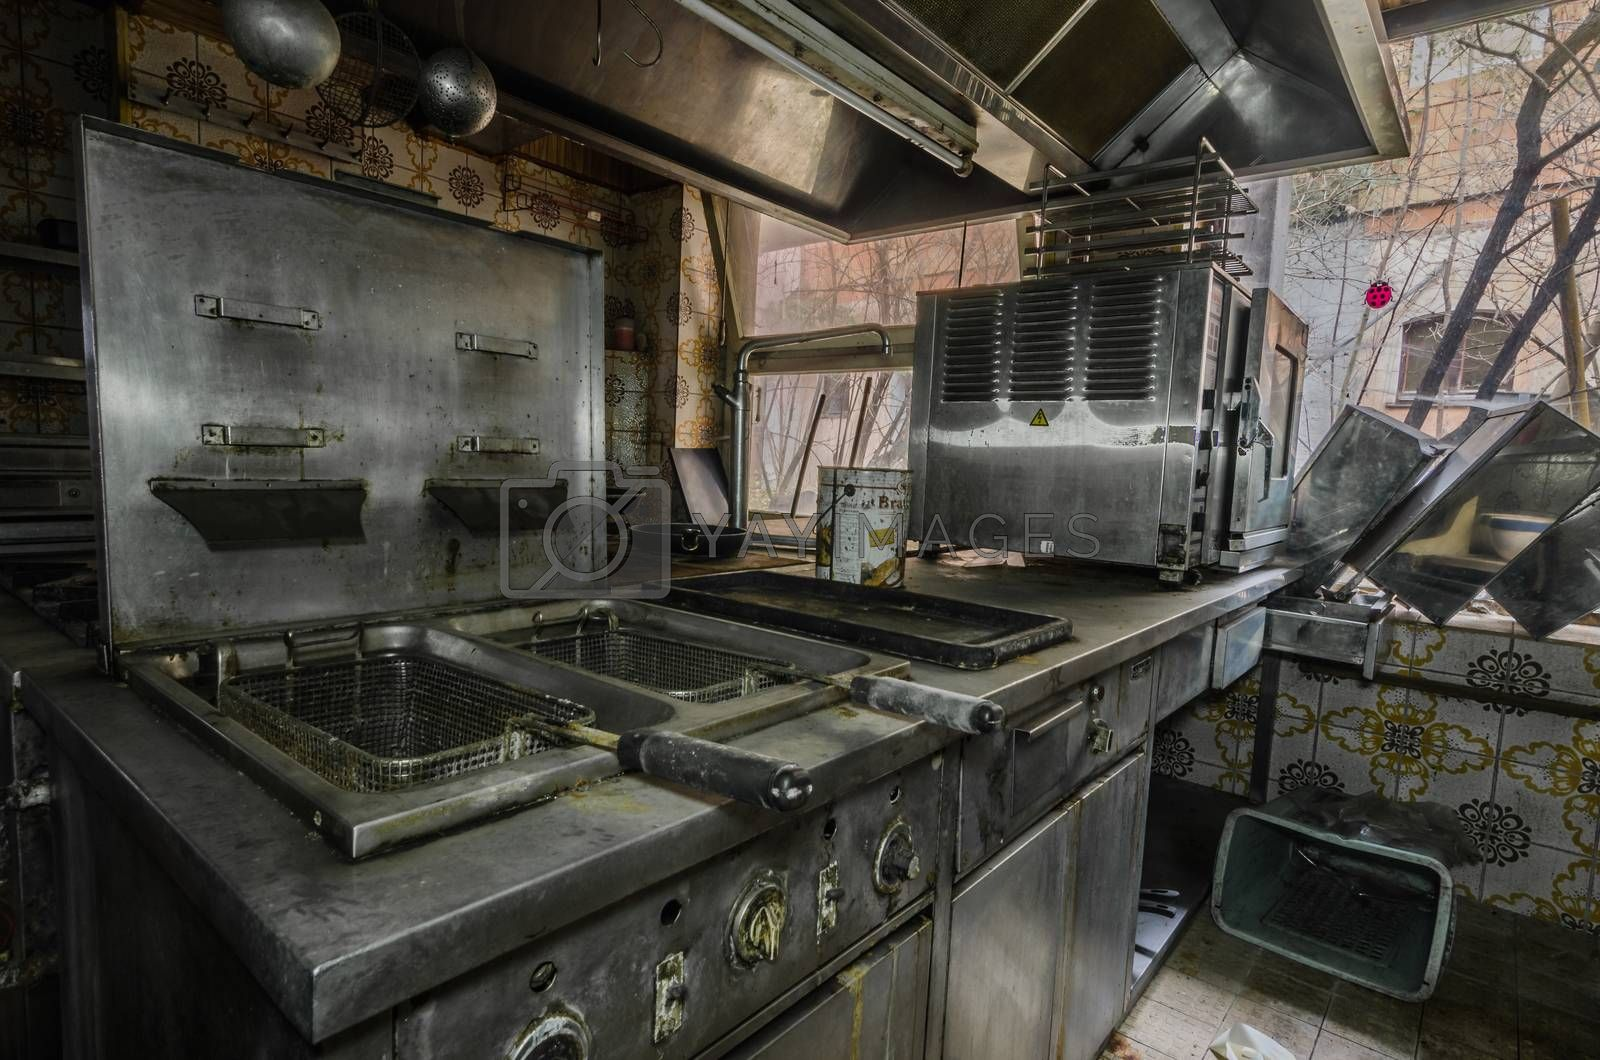 Old fryer in a kitchen by thomaseder